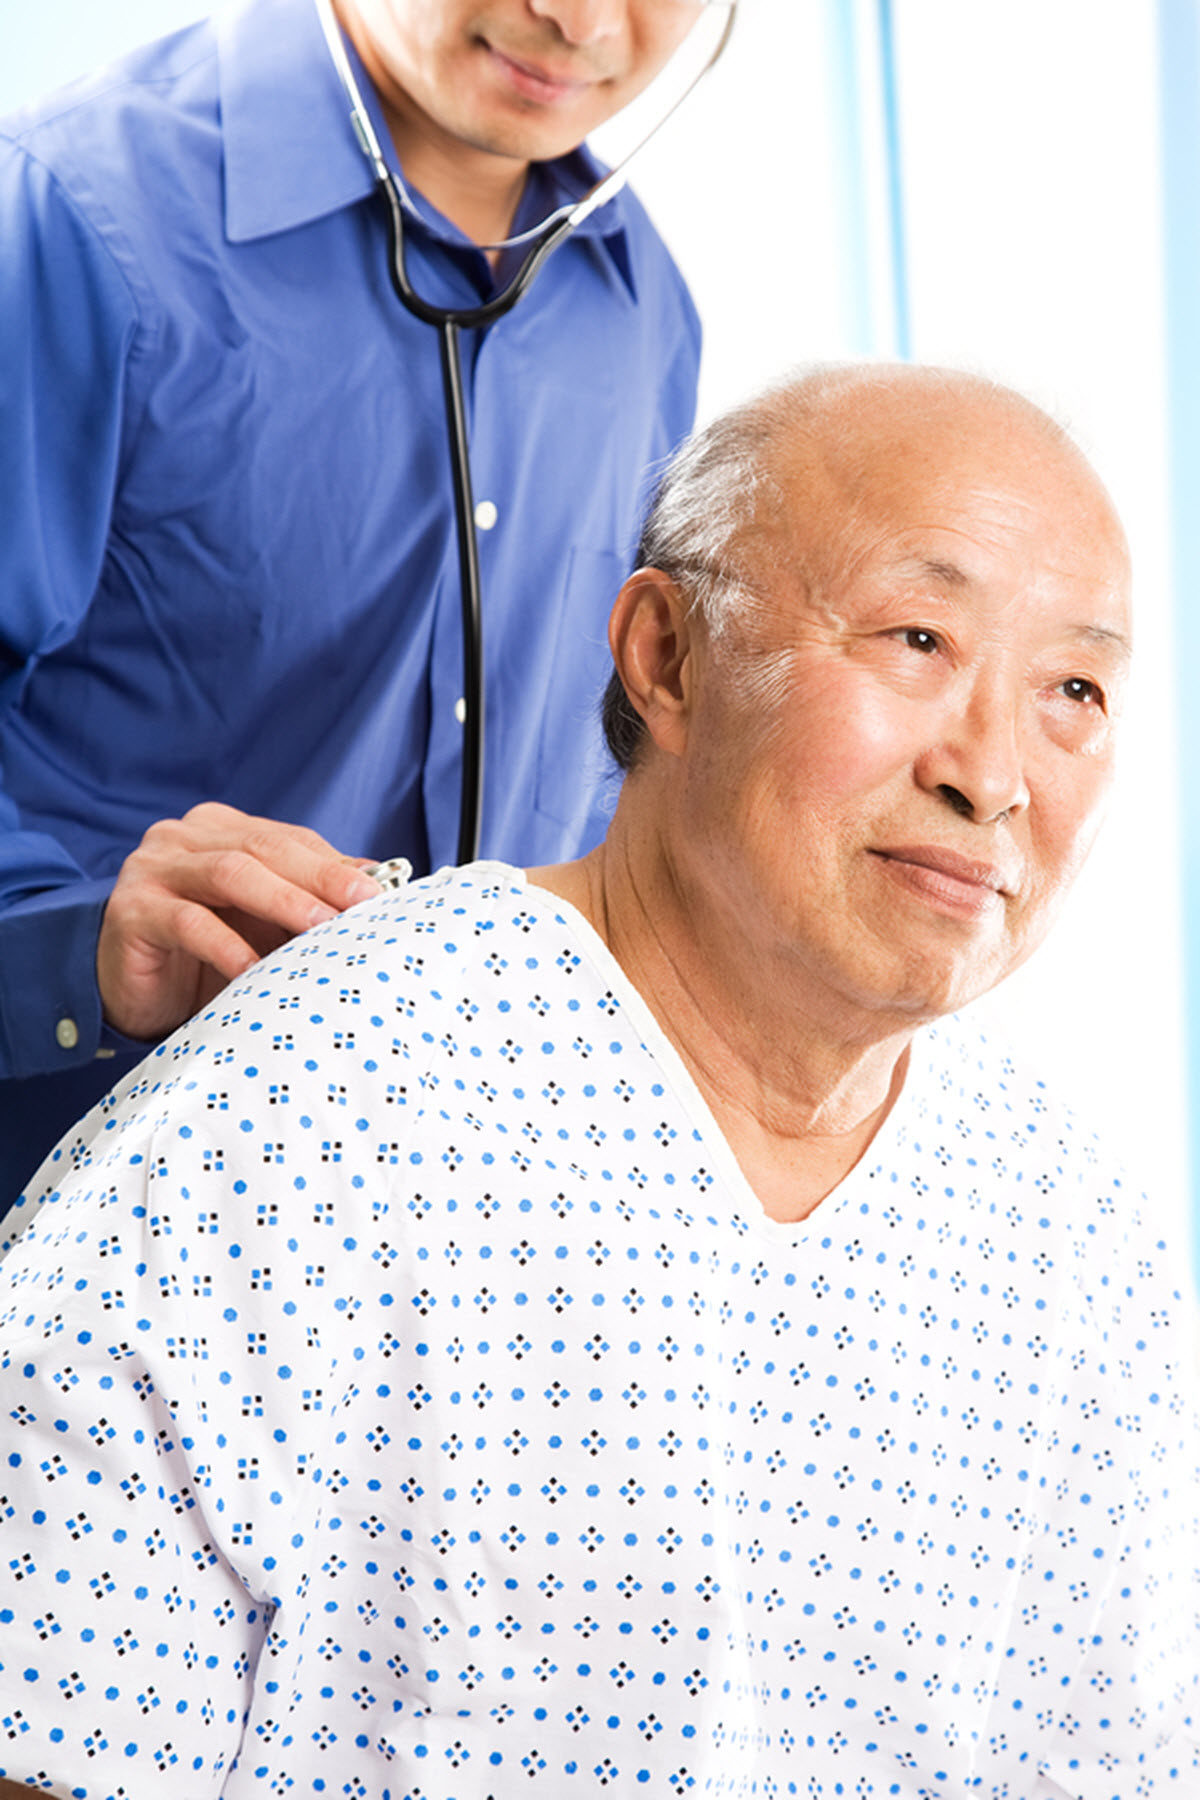 bigstock-Doctor-And-Patient-3414960-1200x1800.jpg